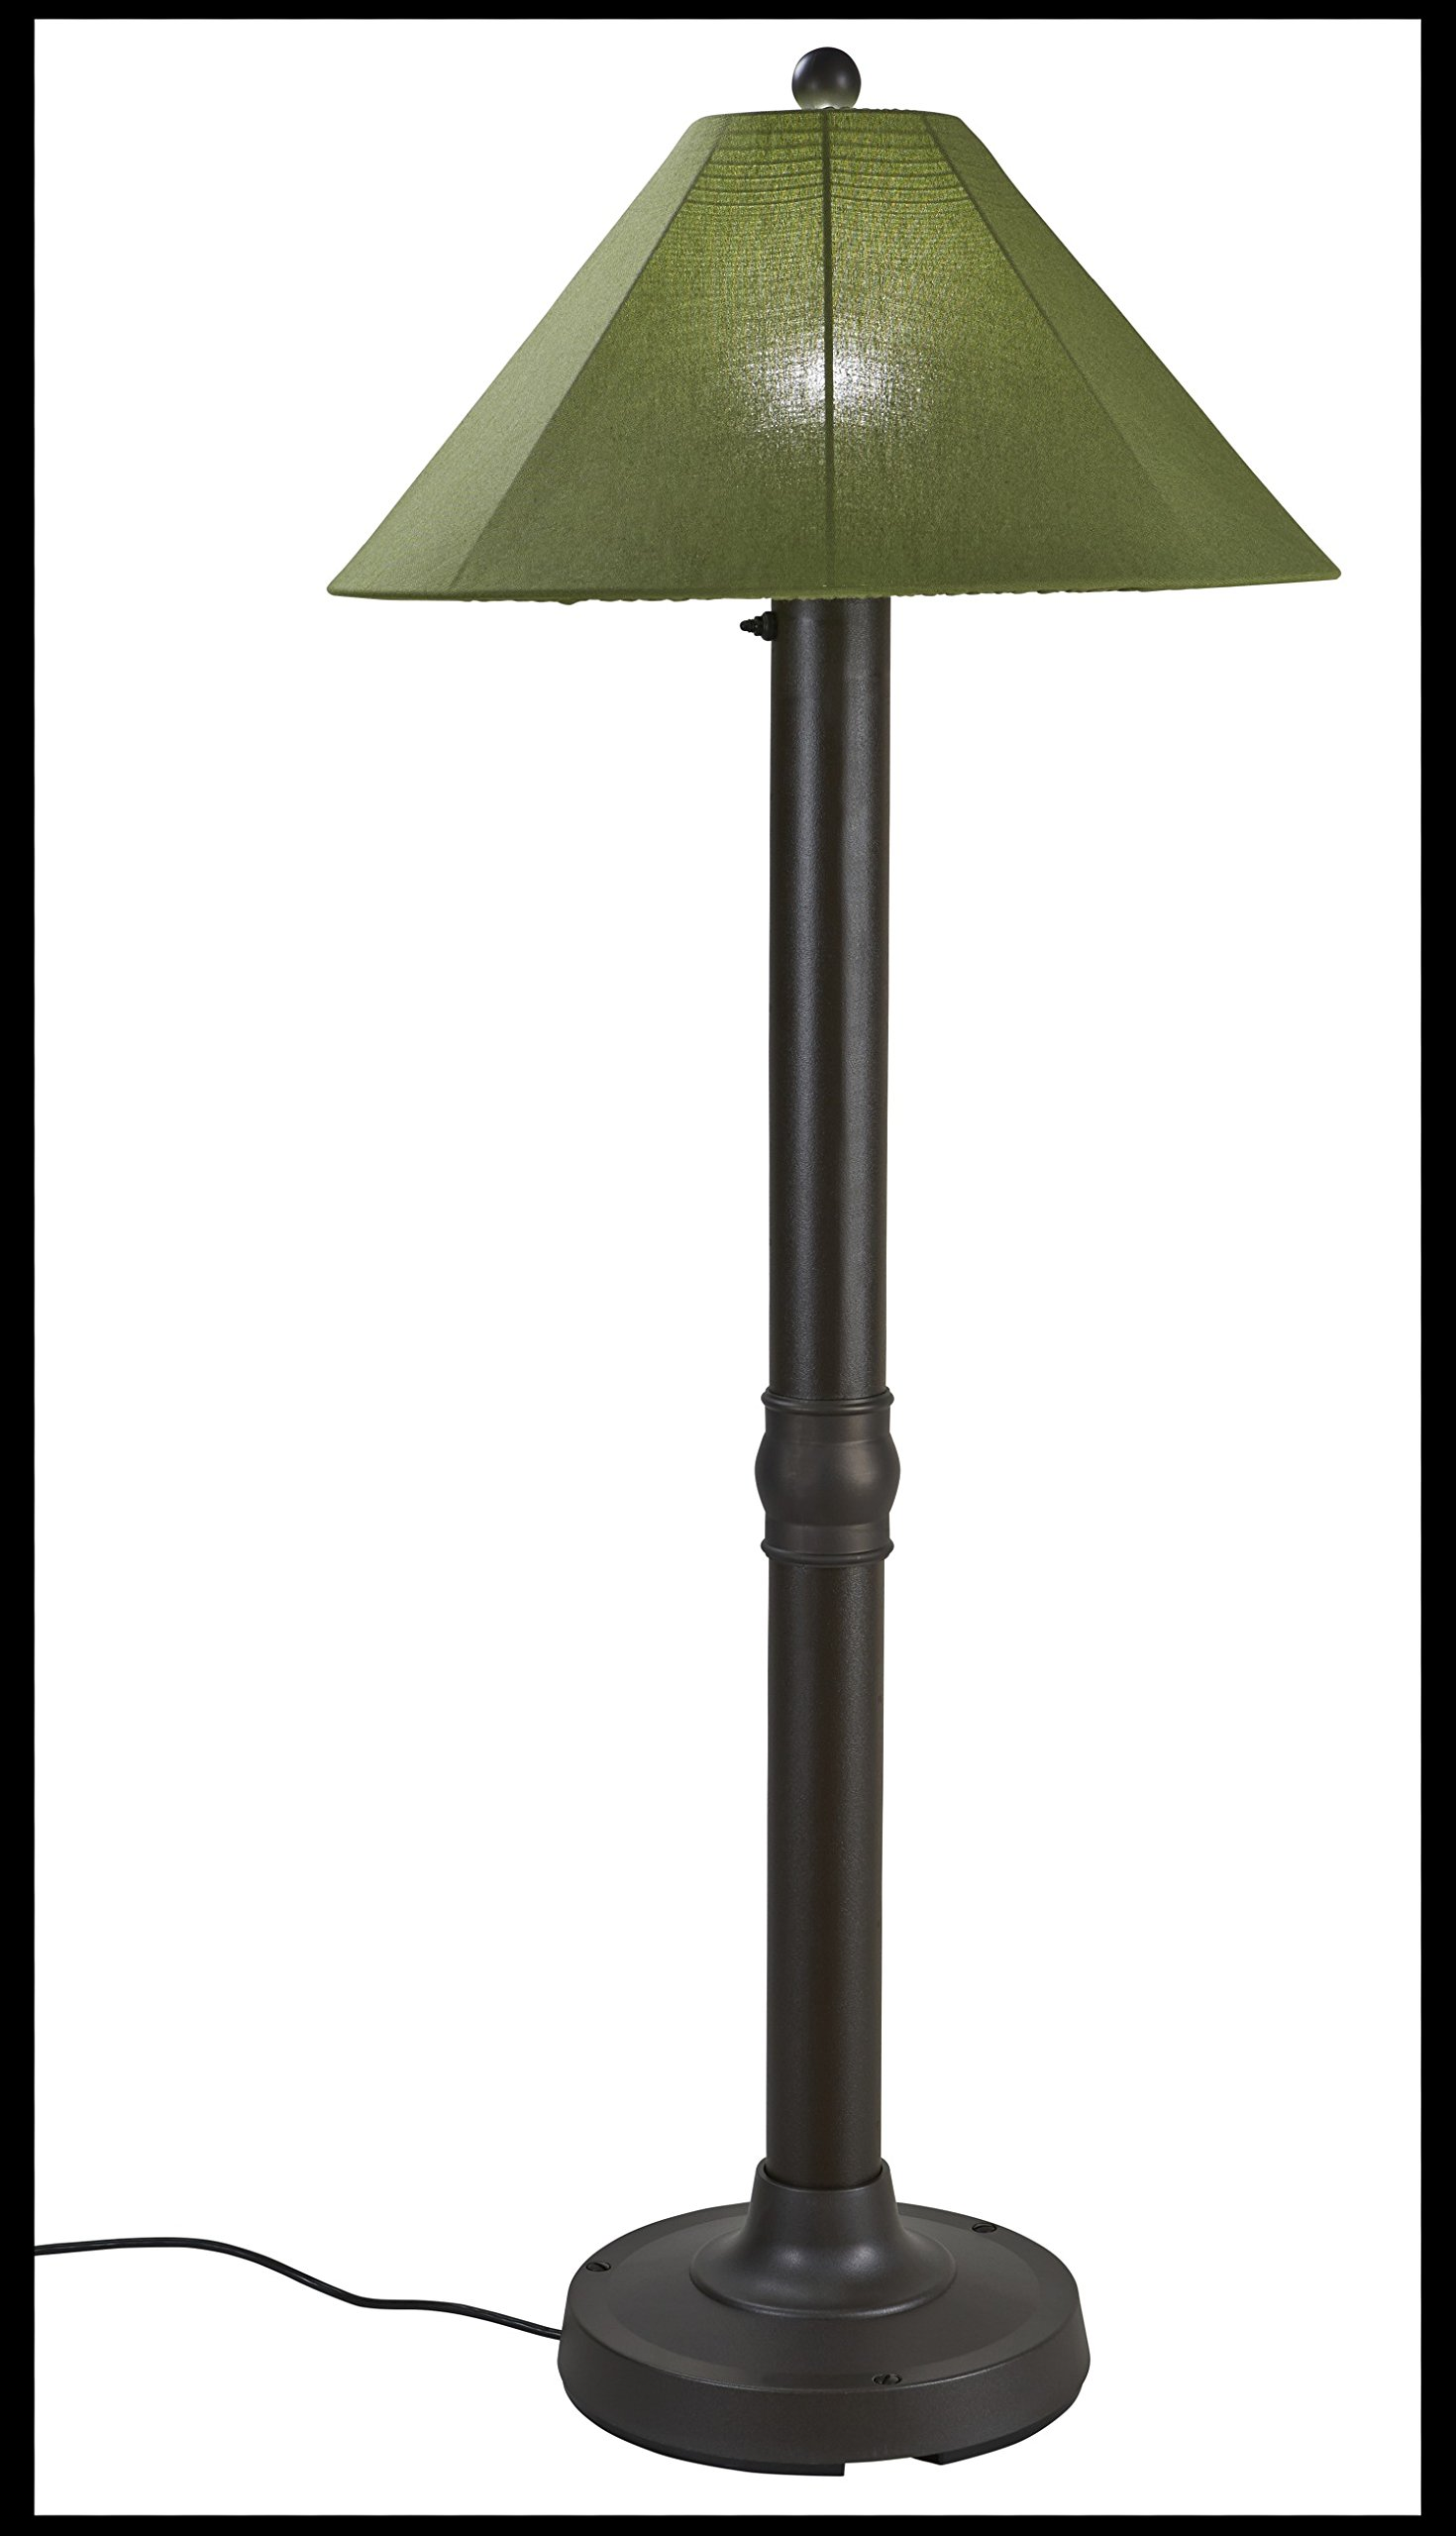 Patio Living Concepts 65687 Catalina Outdoor Floor Lamp by Patio Living Concepts